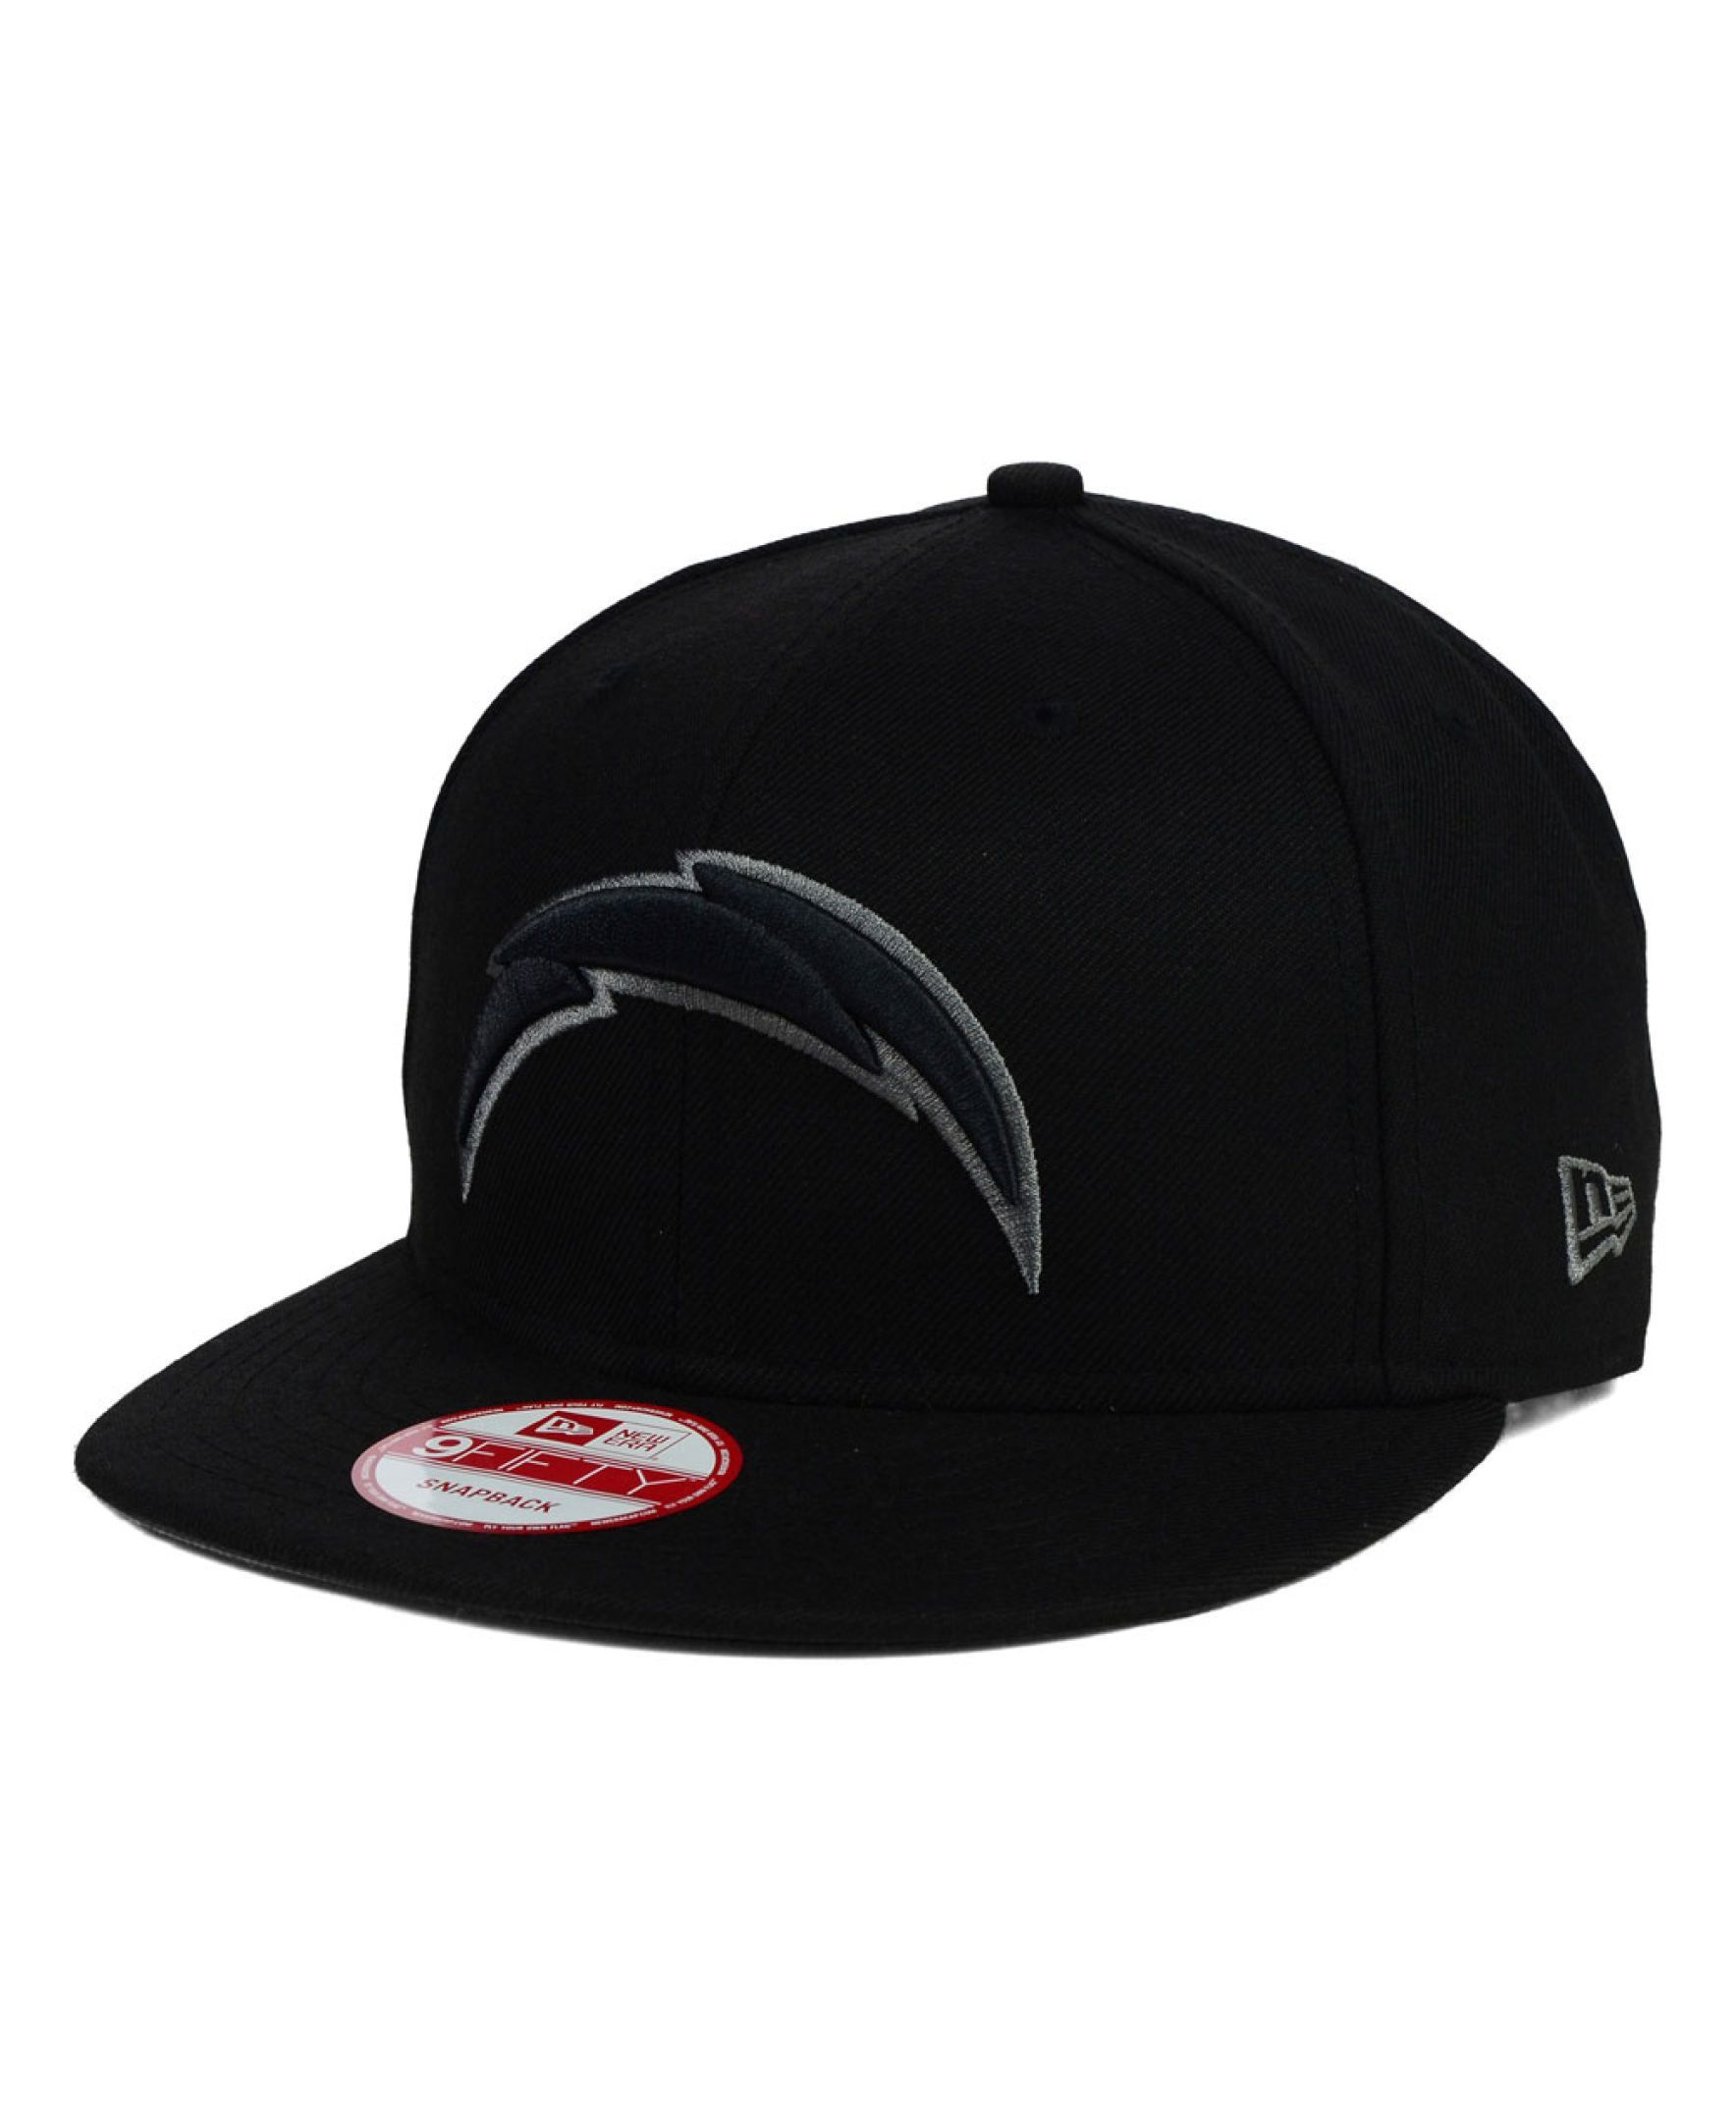 8484b80af0b92 New Era San Diego Chargers Black Gray 9FIFTY Snapback Cap   Reviews - Sports  Fan Shop By Lids - Men - Macy s